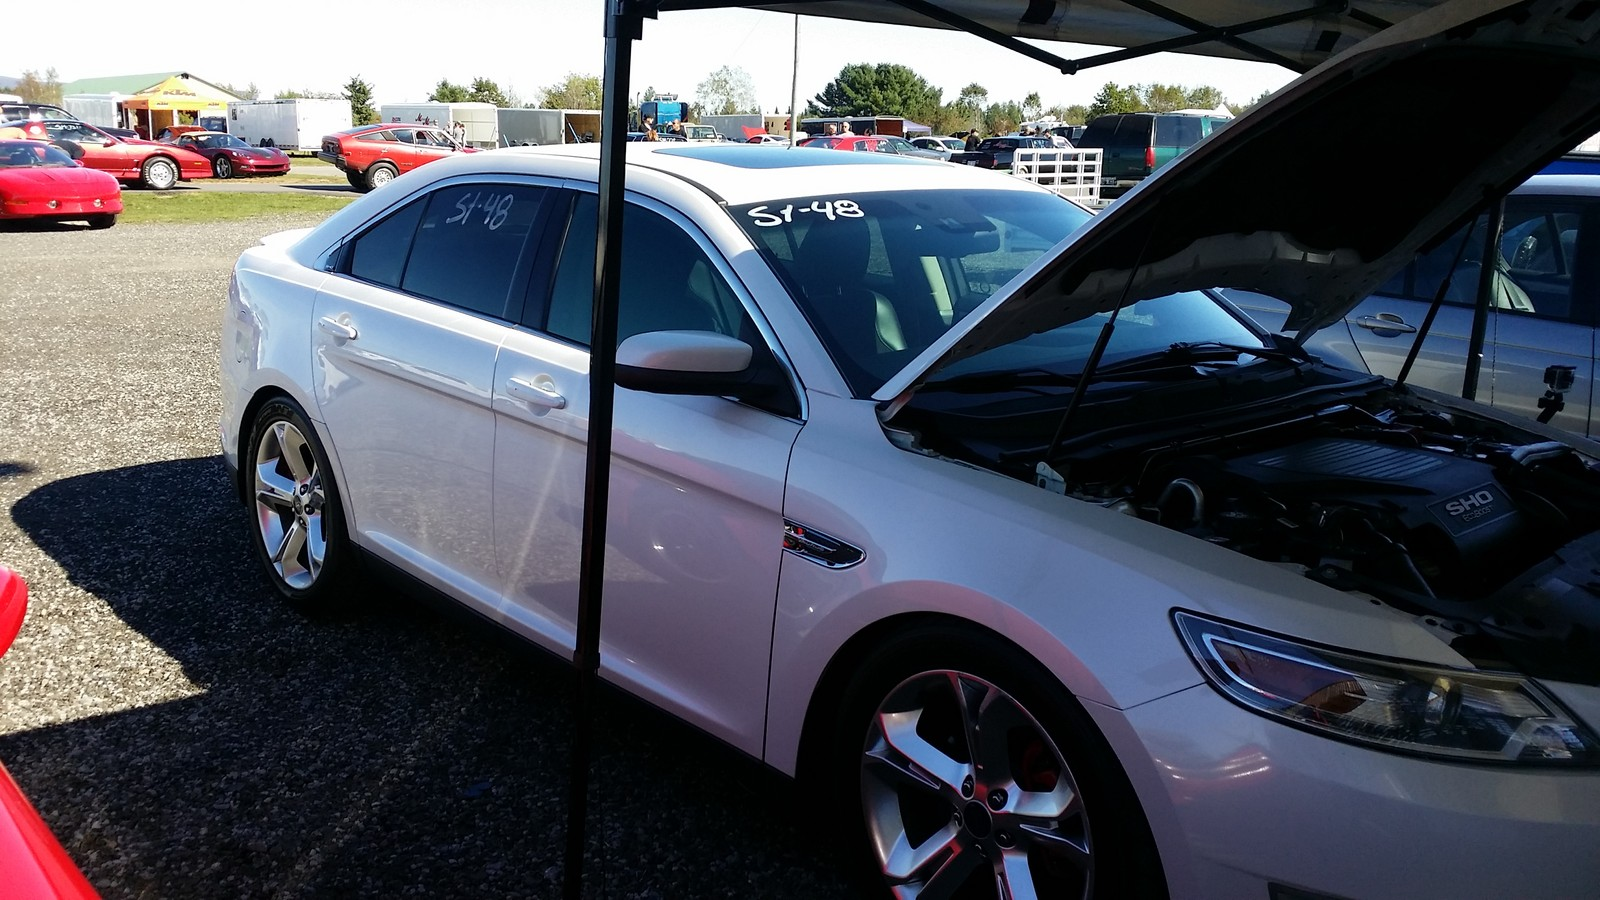 2010 Ford Taurus SHO 1/4 mile Drag Racing timeslip specs 0-60 ...